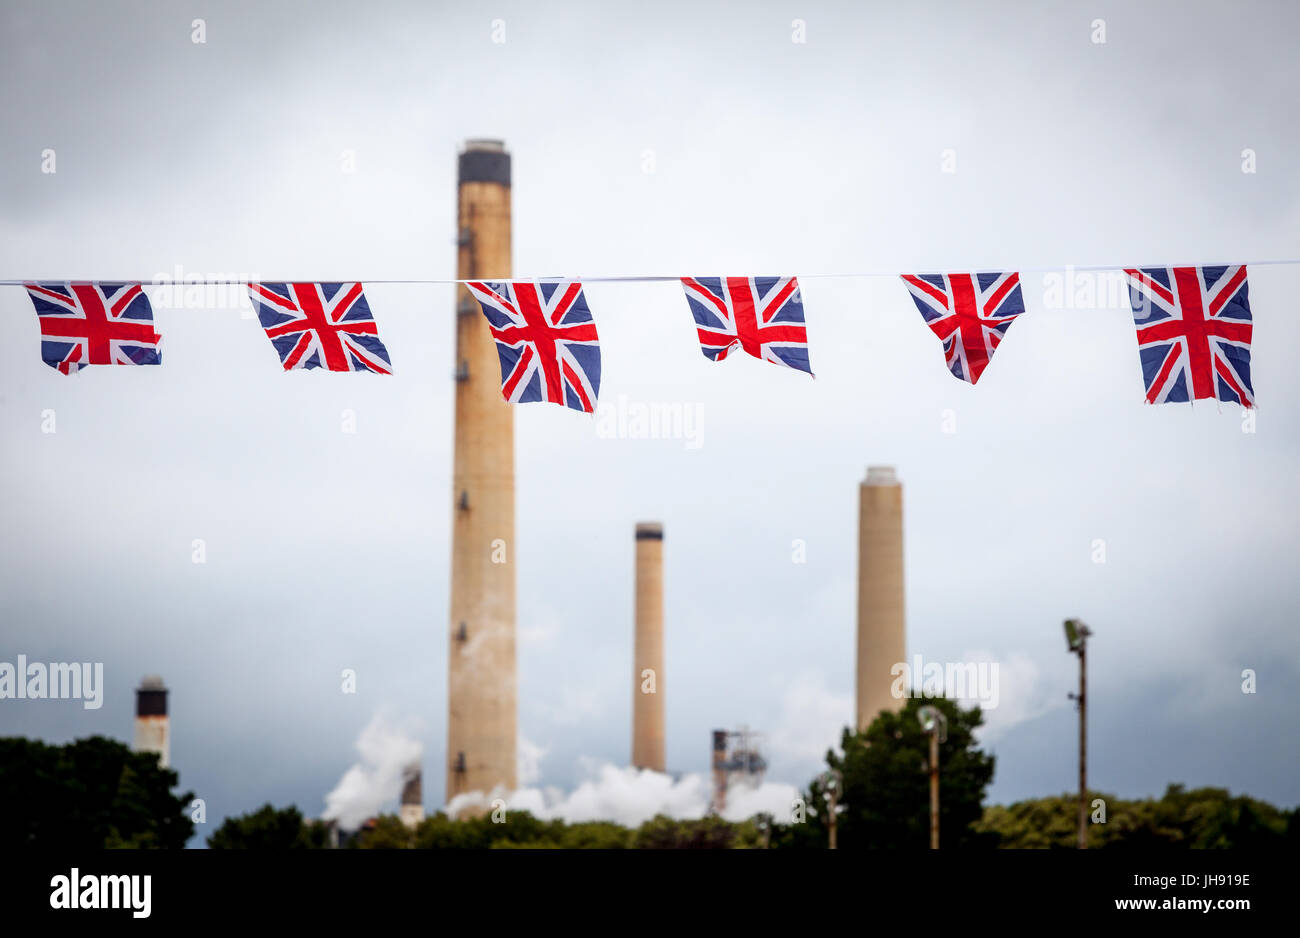 Refinery chimneys with Union Jack bunting flags in the foreground - Stock Image